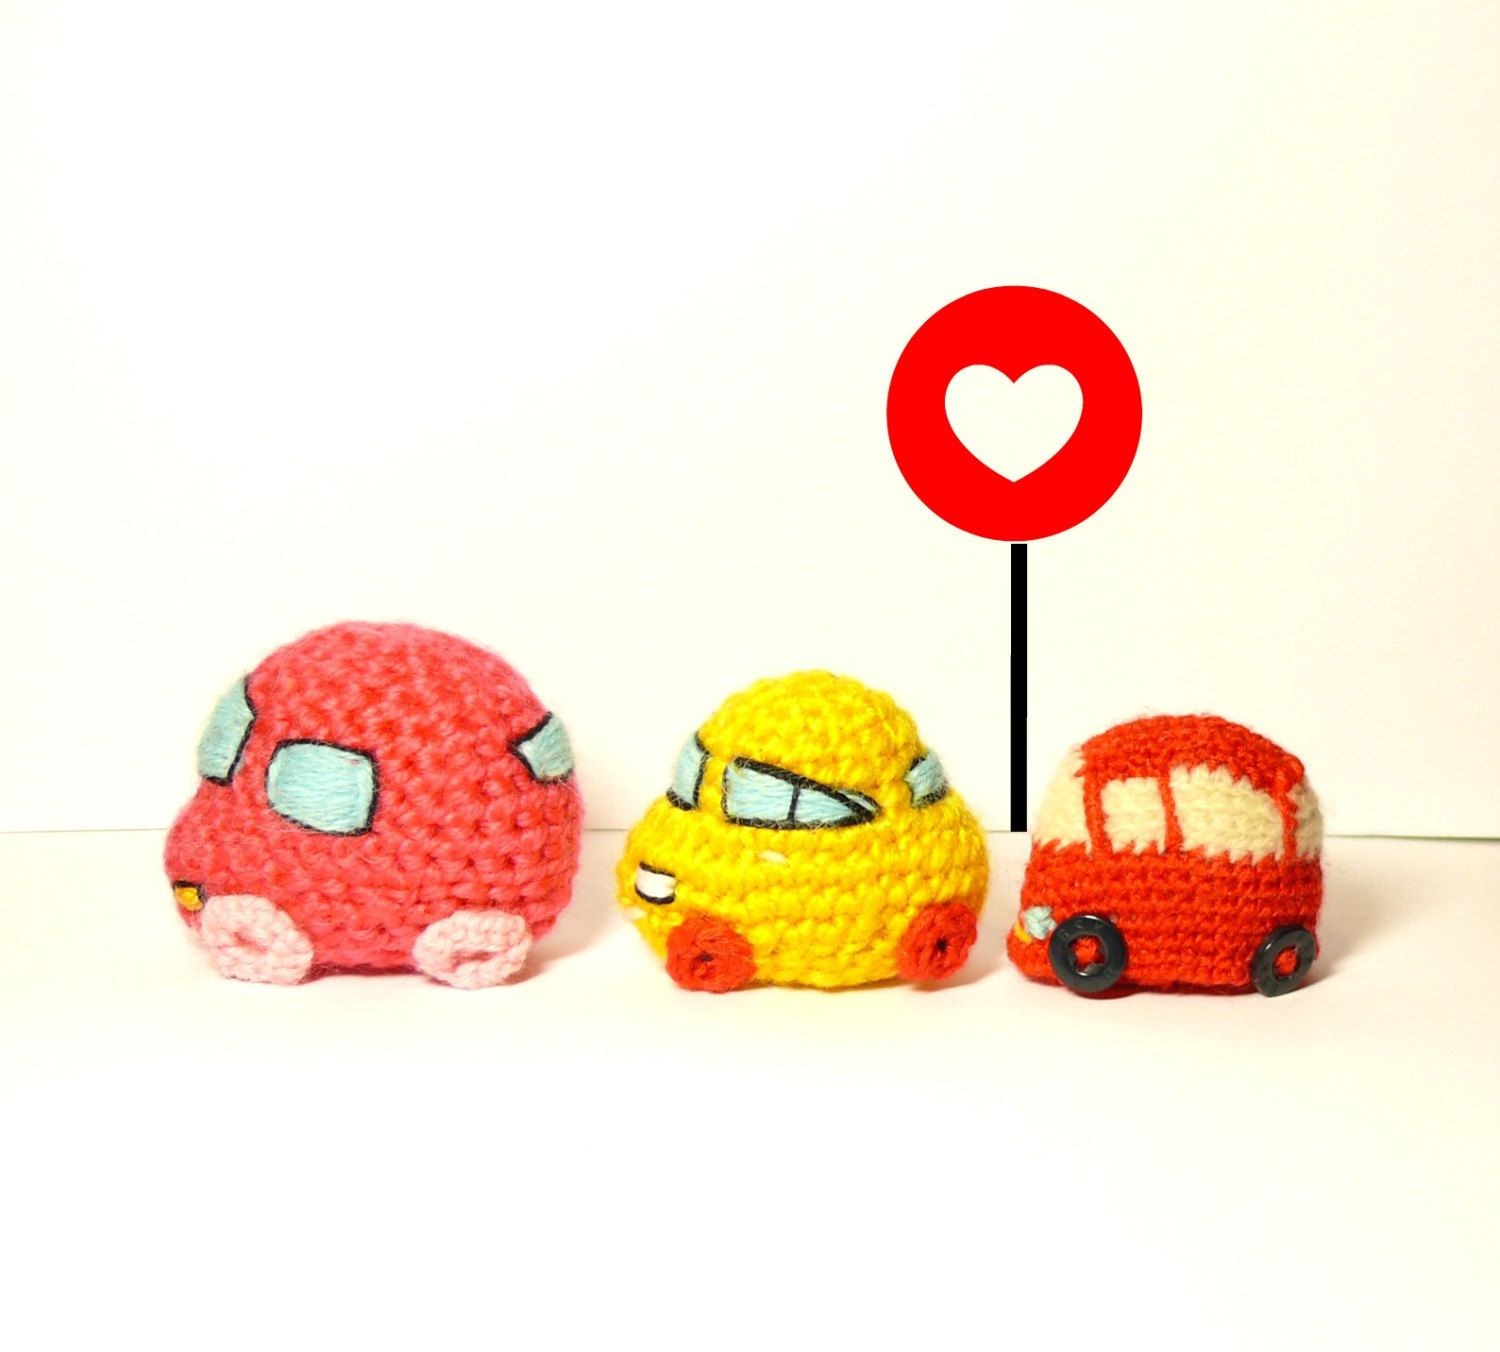 Toys car images  crochet carSet of ThreeCrochet car baby toys red car pink car